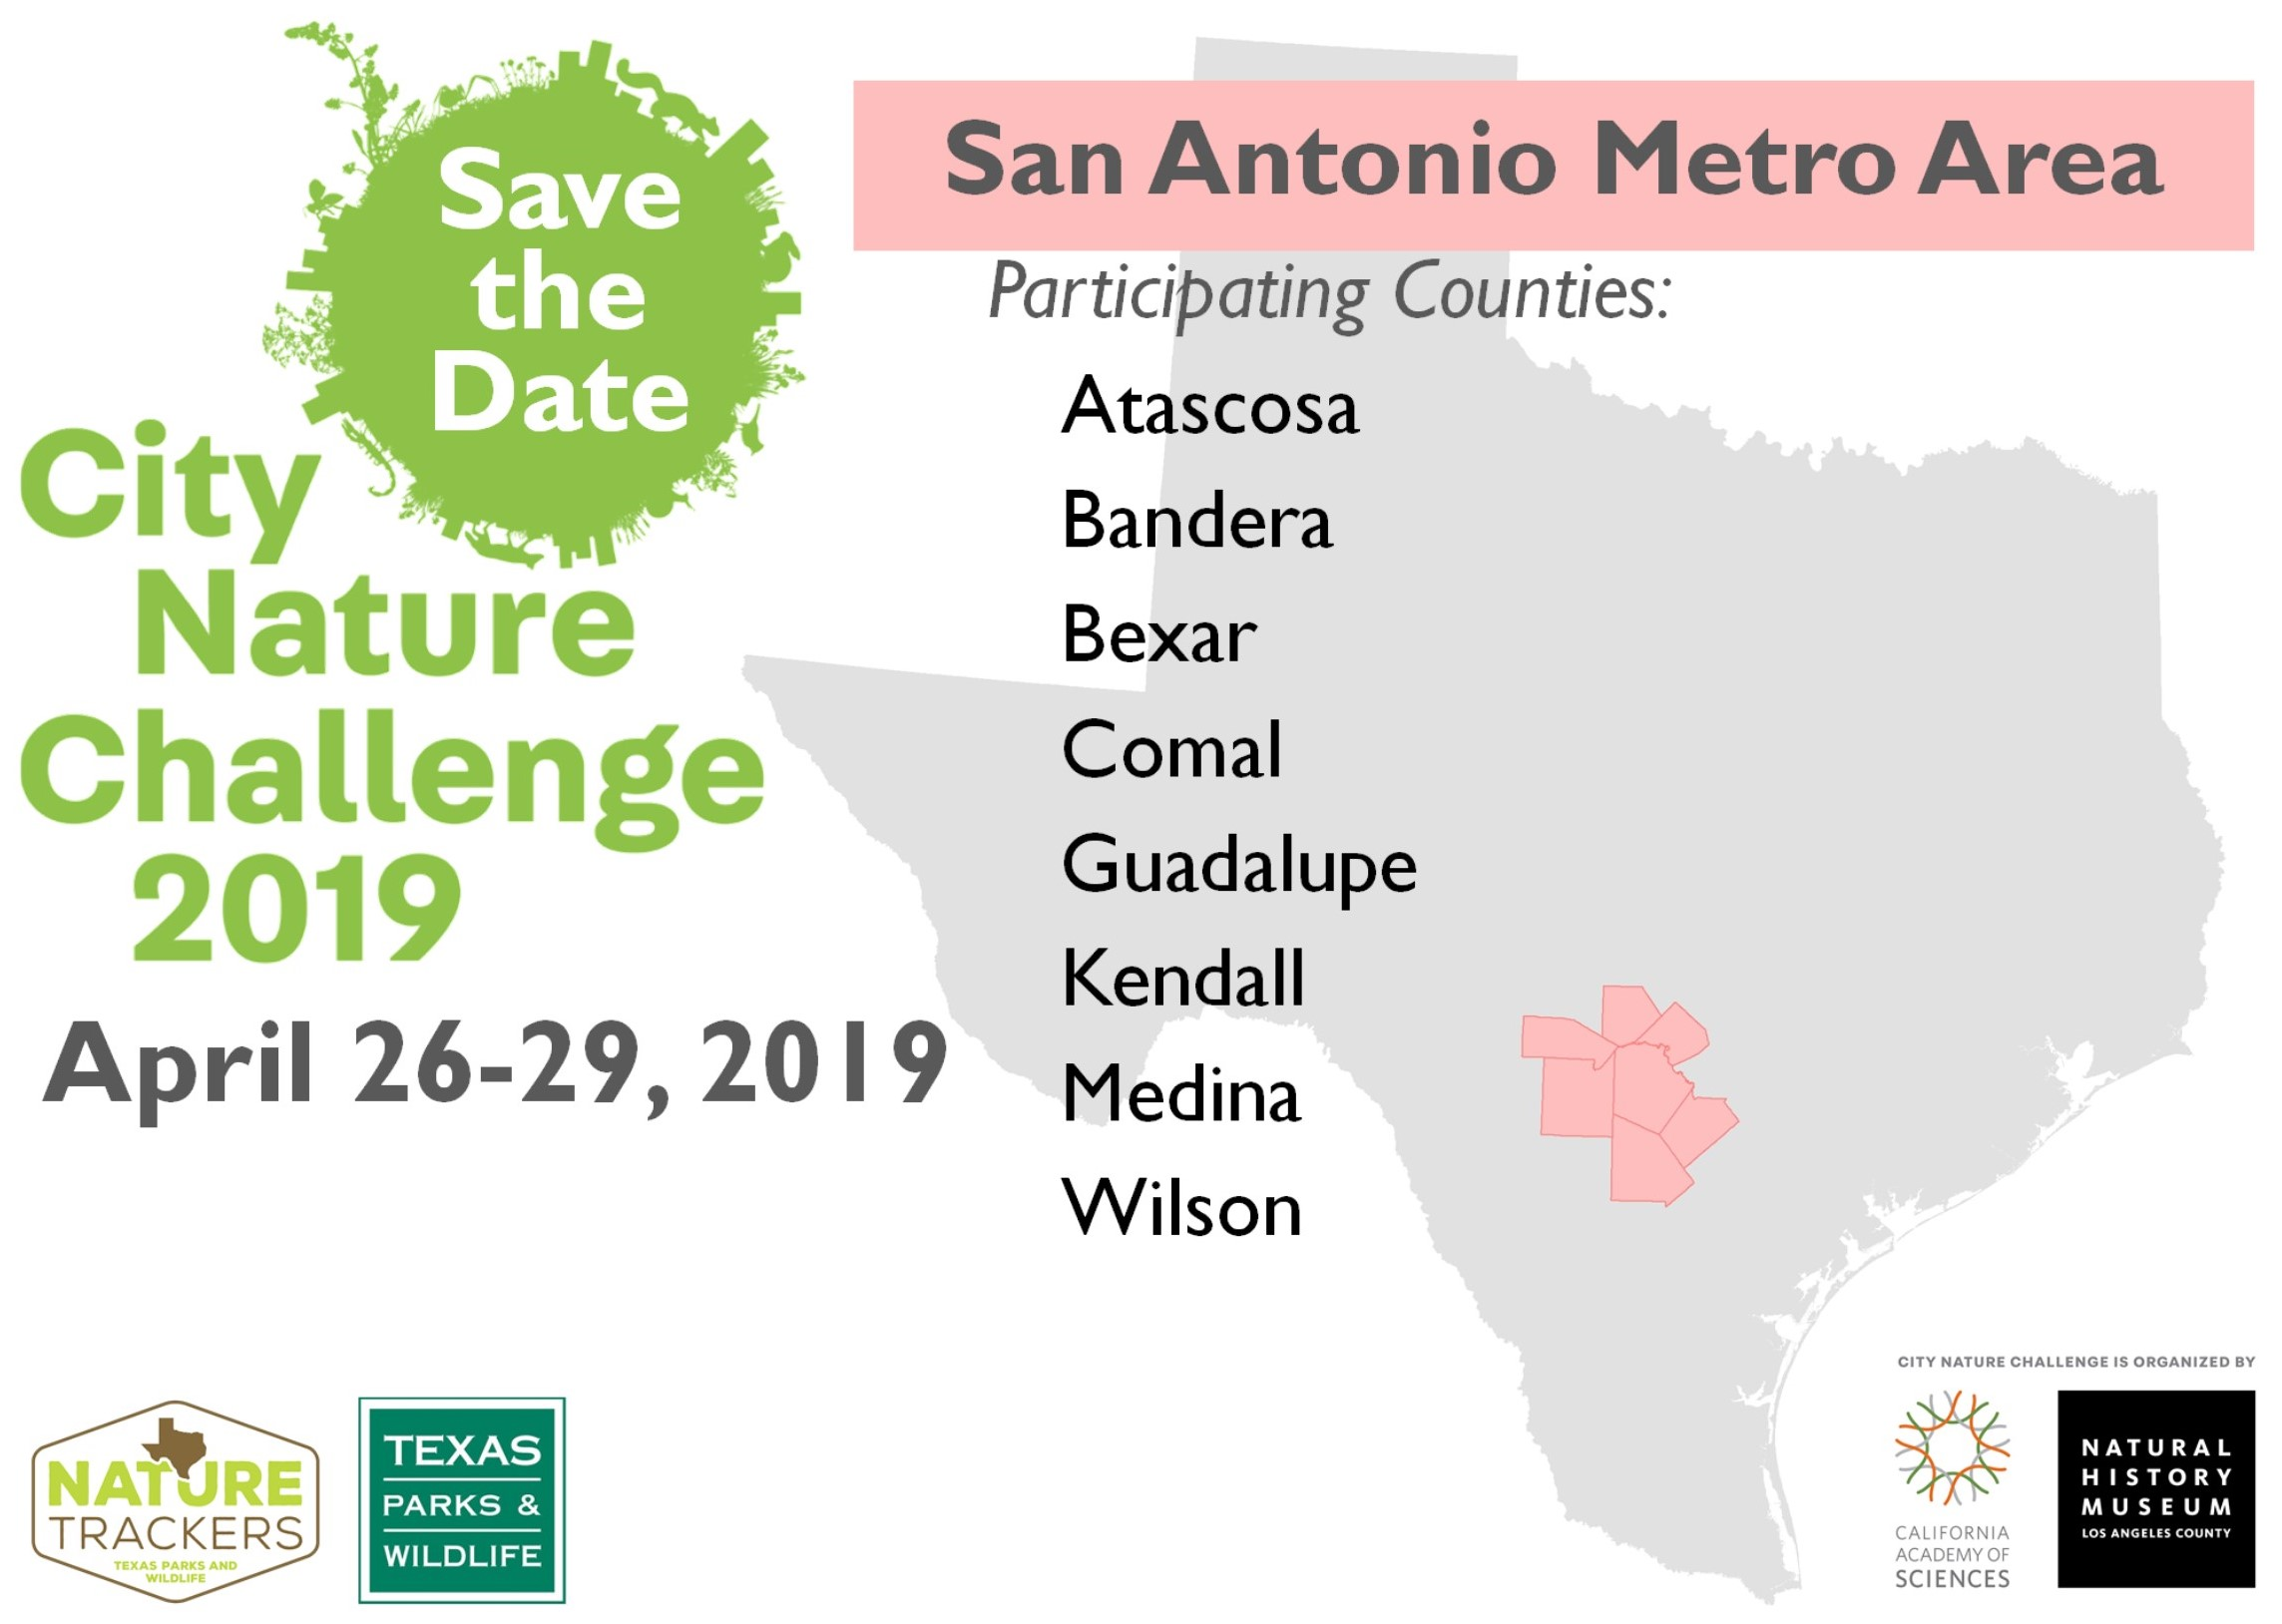 Click on the image above for a printable City Nature Challenge 2019 San Antonio Metro Area map.